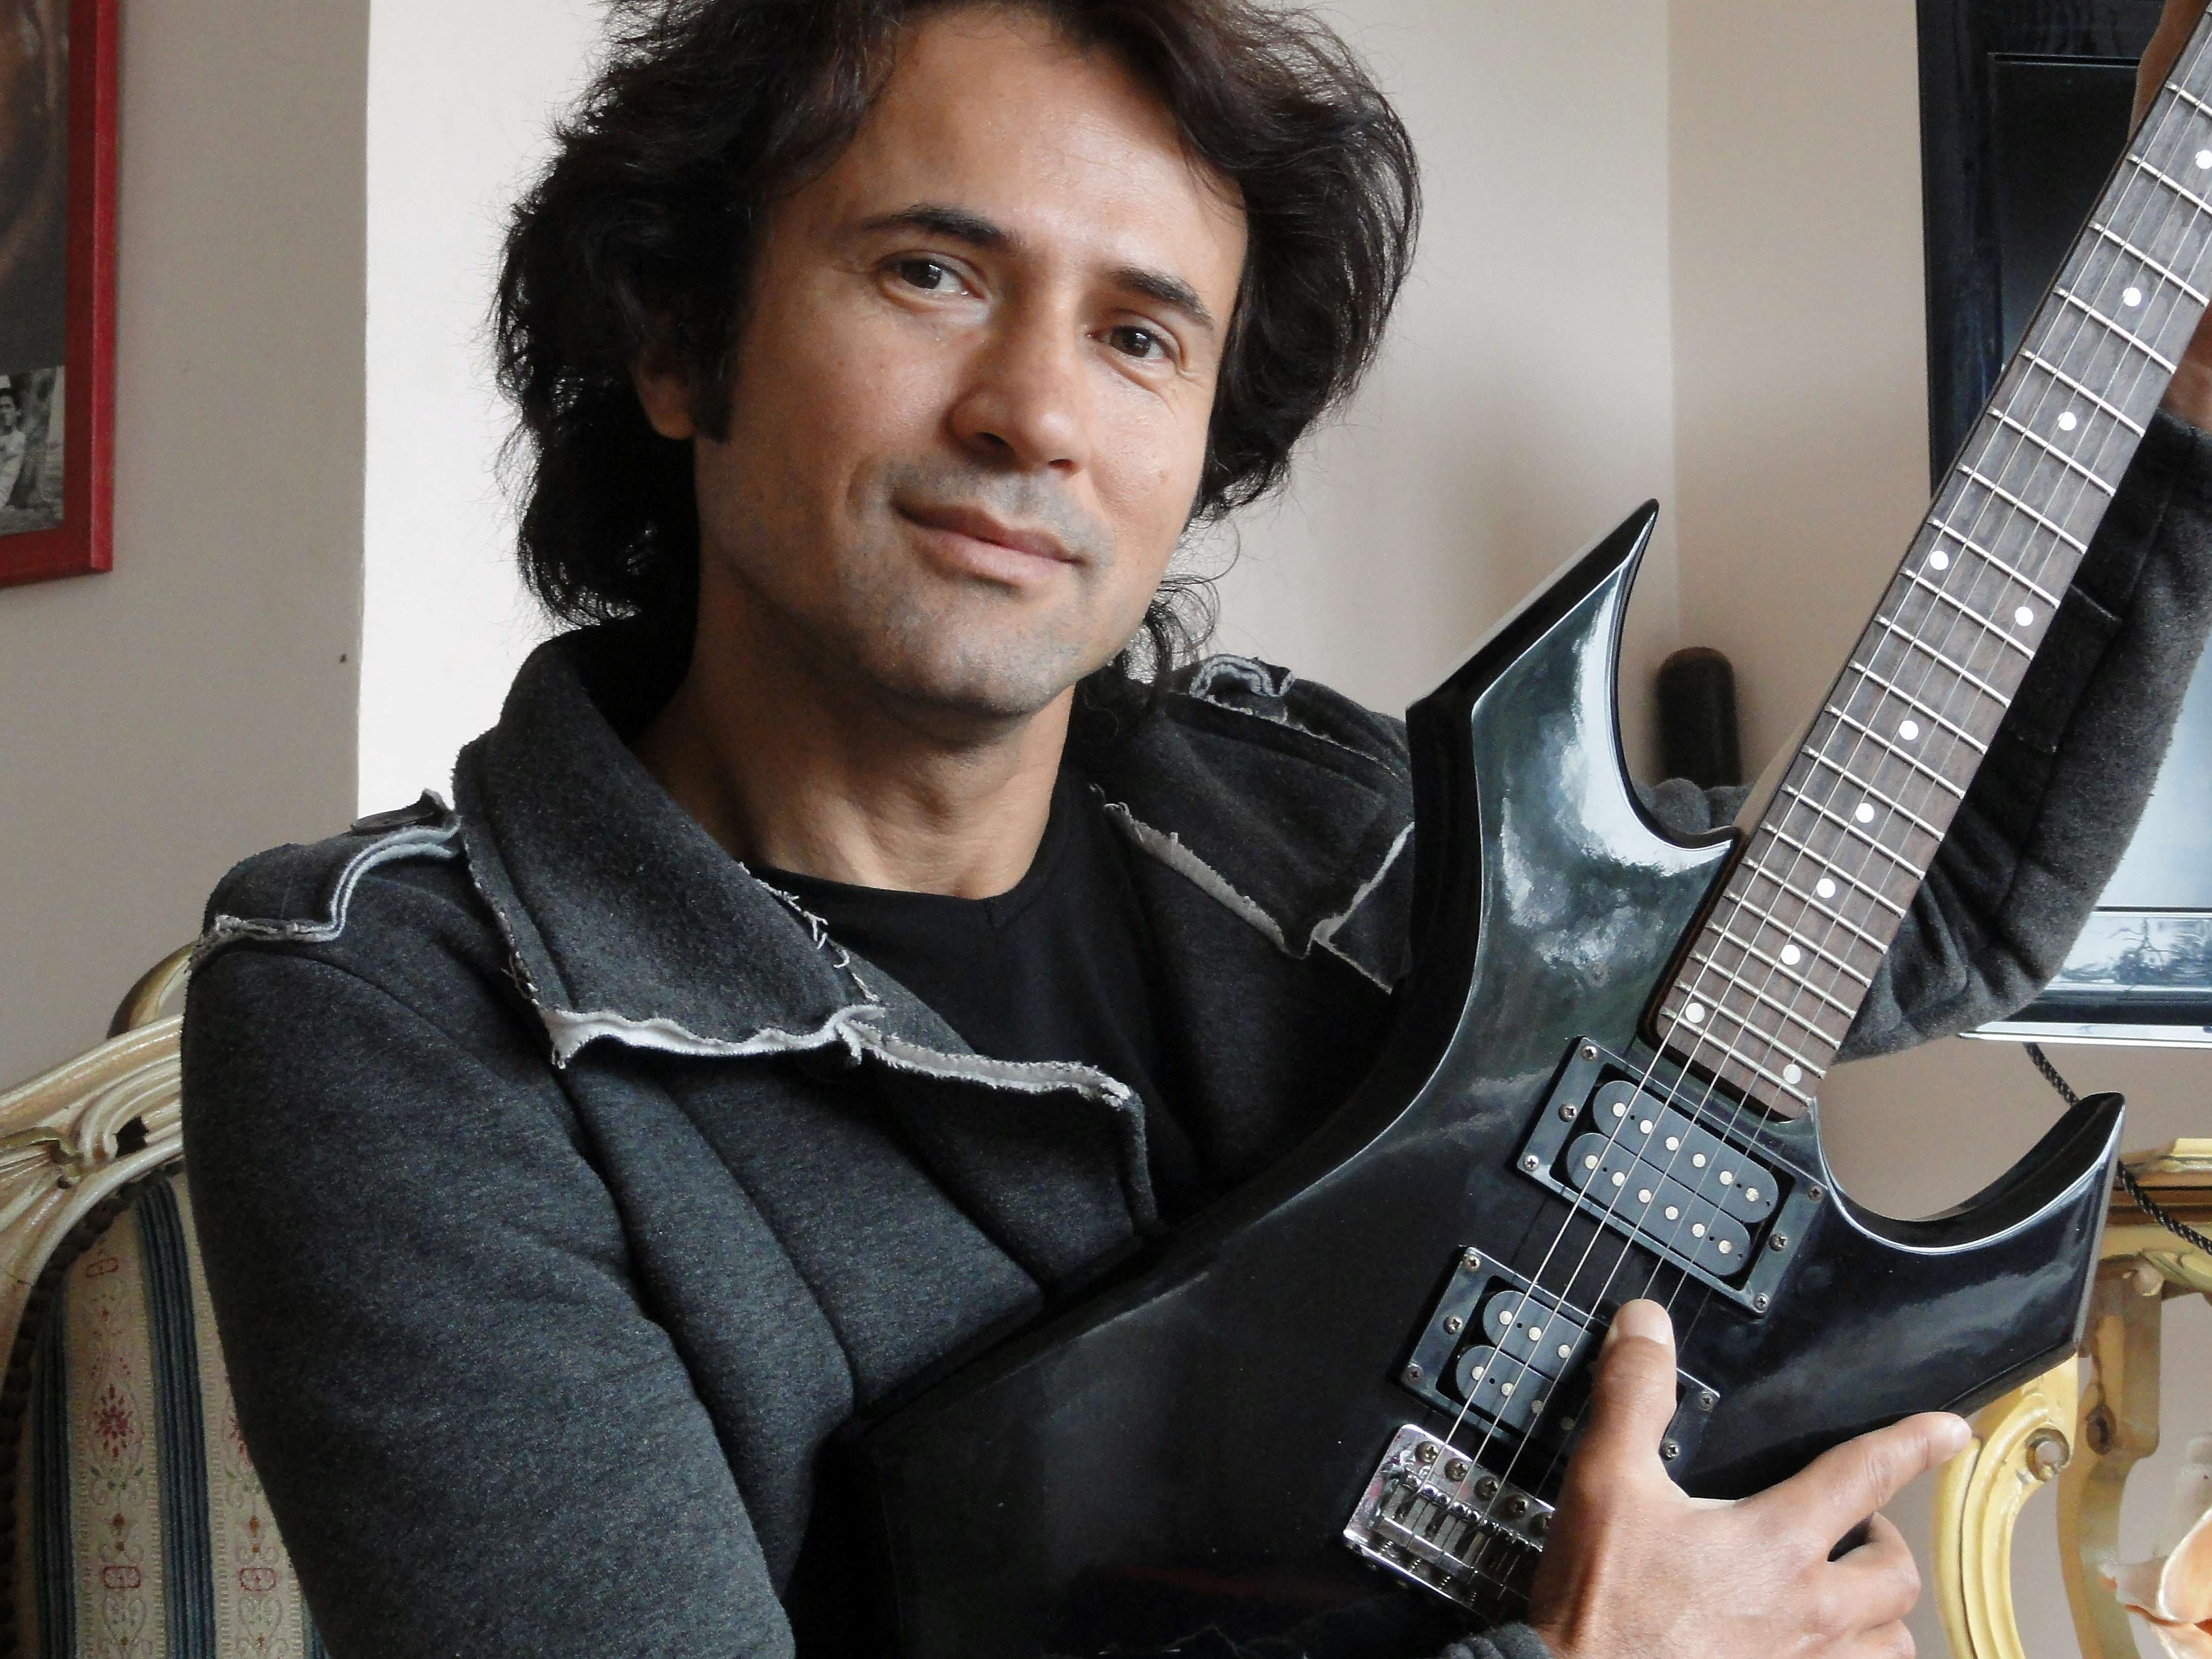 he imam from a tiny hamlet on Turkey's Mediterranean coast has run into trouble with the country's powerful religious authorities -- for his other life as a rock musician .